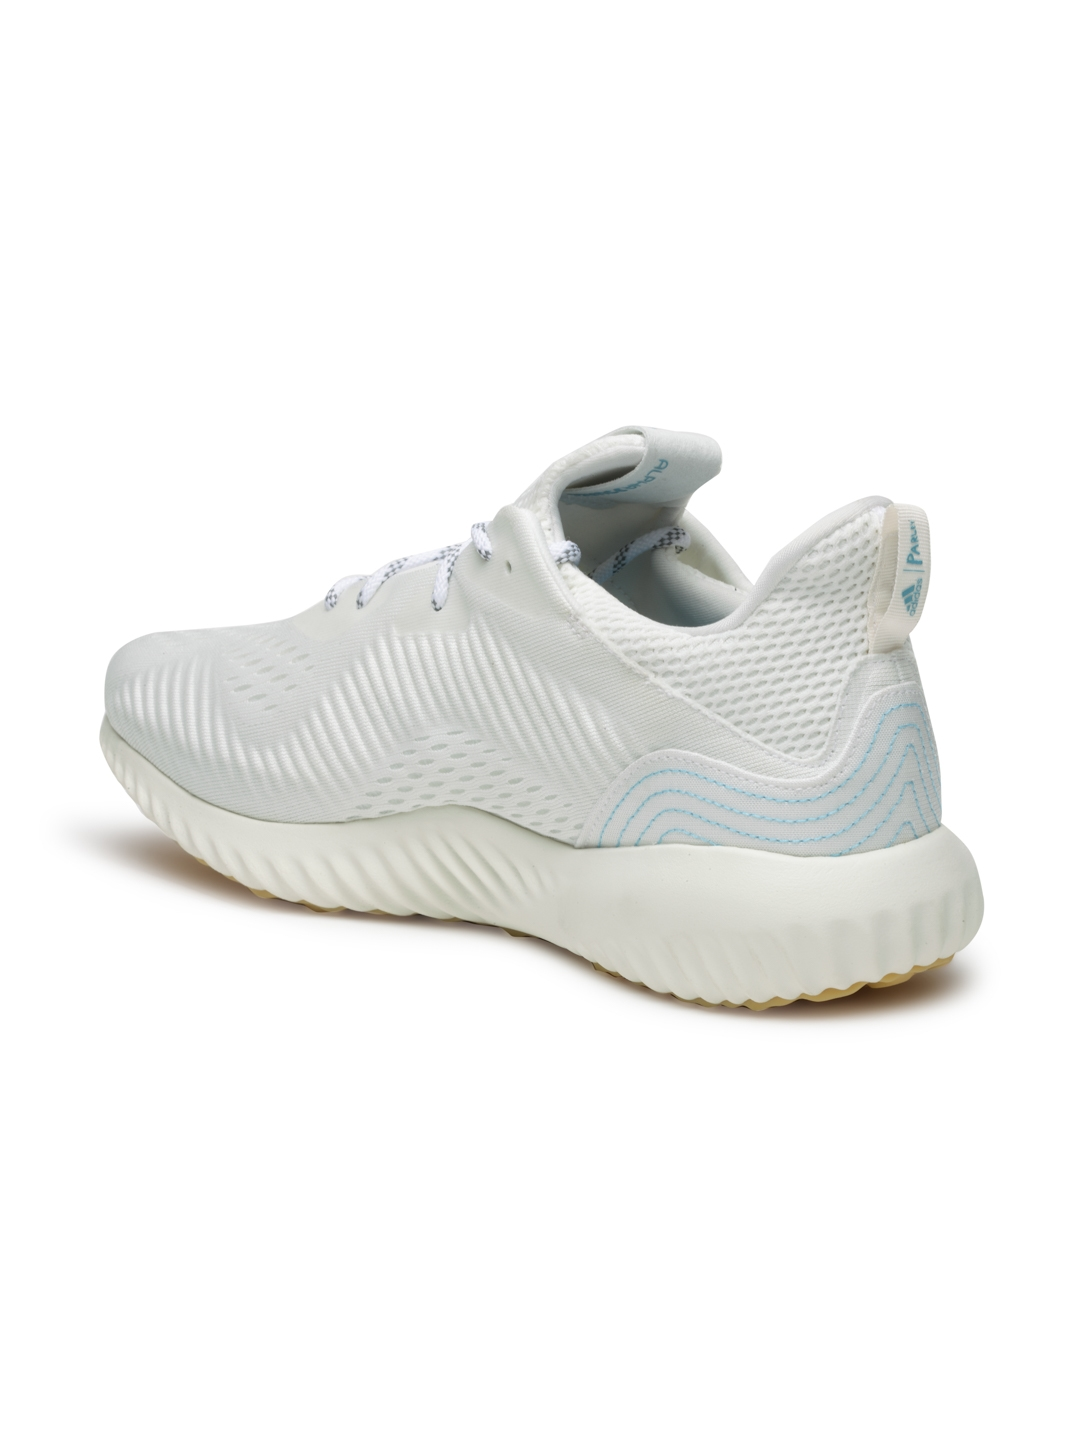 Buy ADIDAS Women Off White ALPHABOUNCE 1 PARLEY Running Shoes ... 4809fbfa2